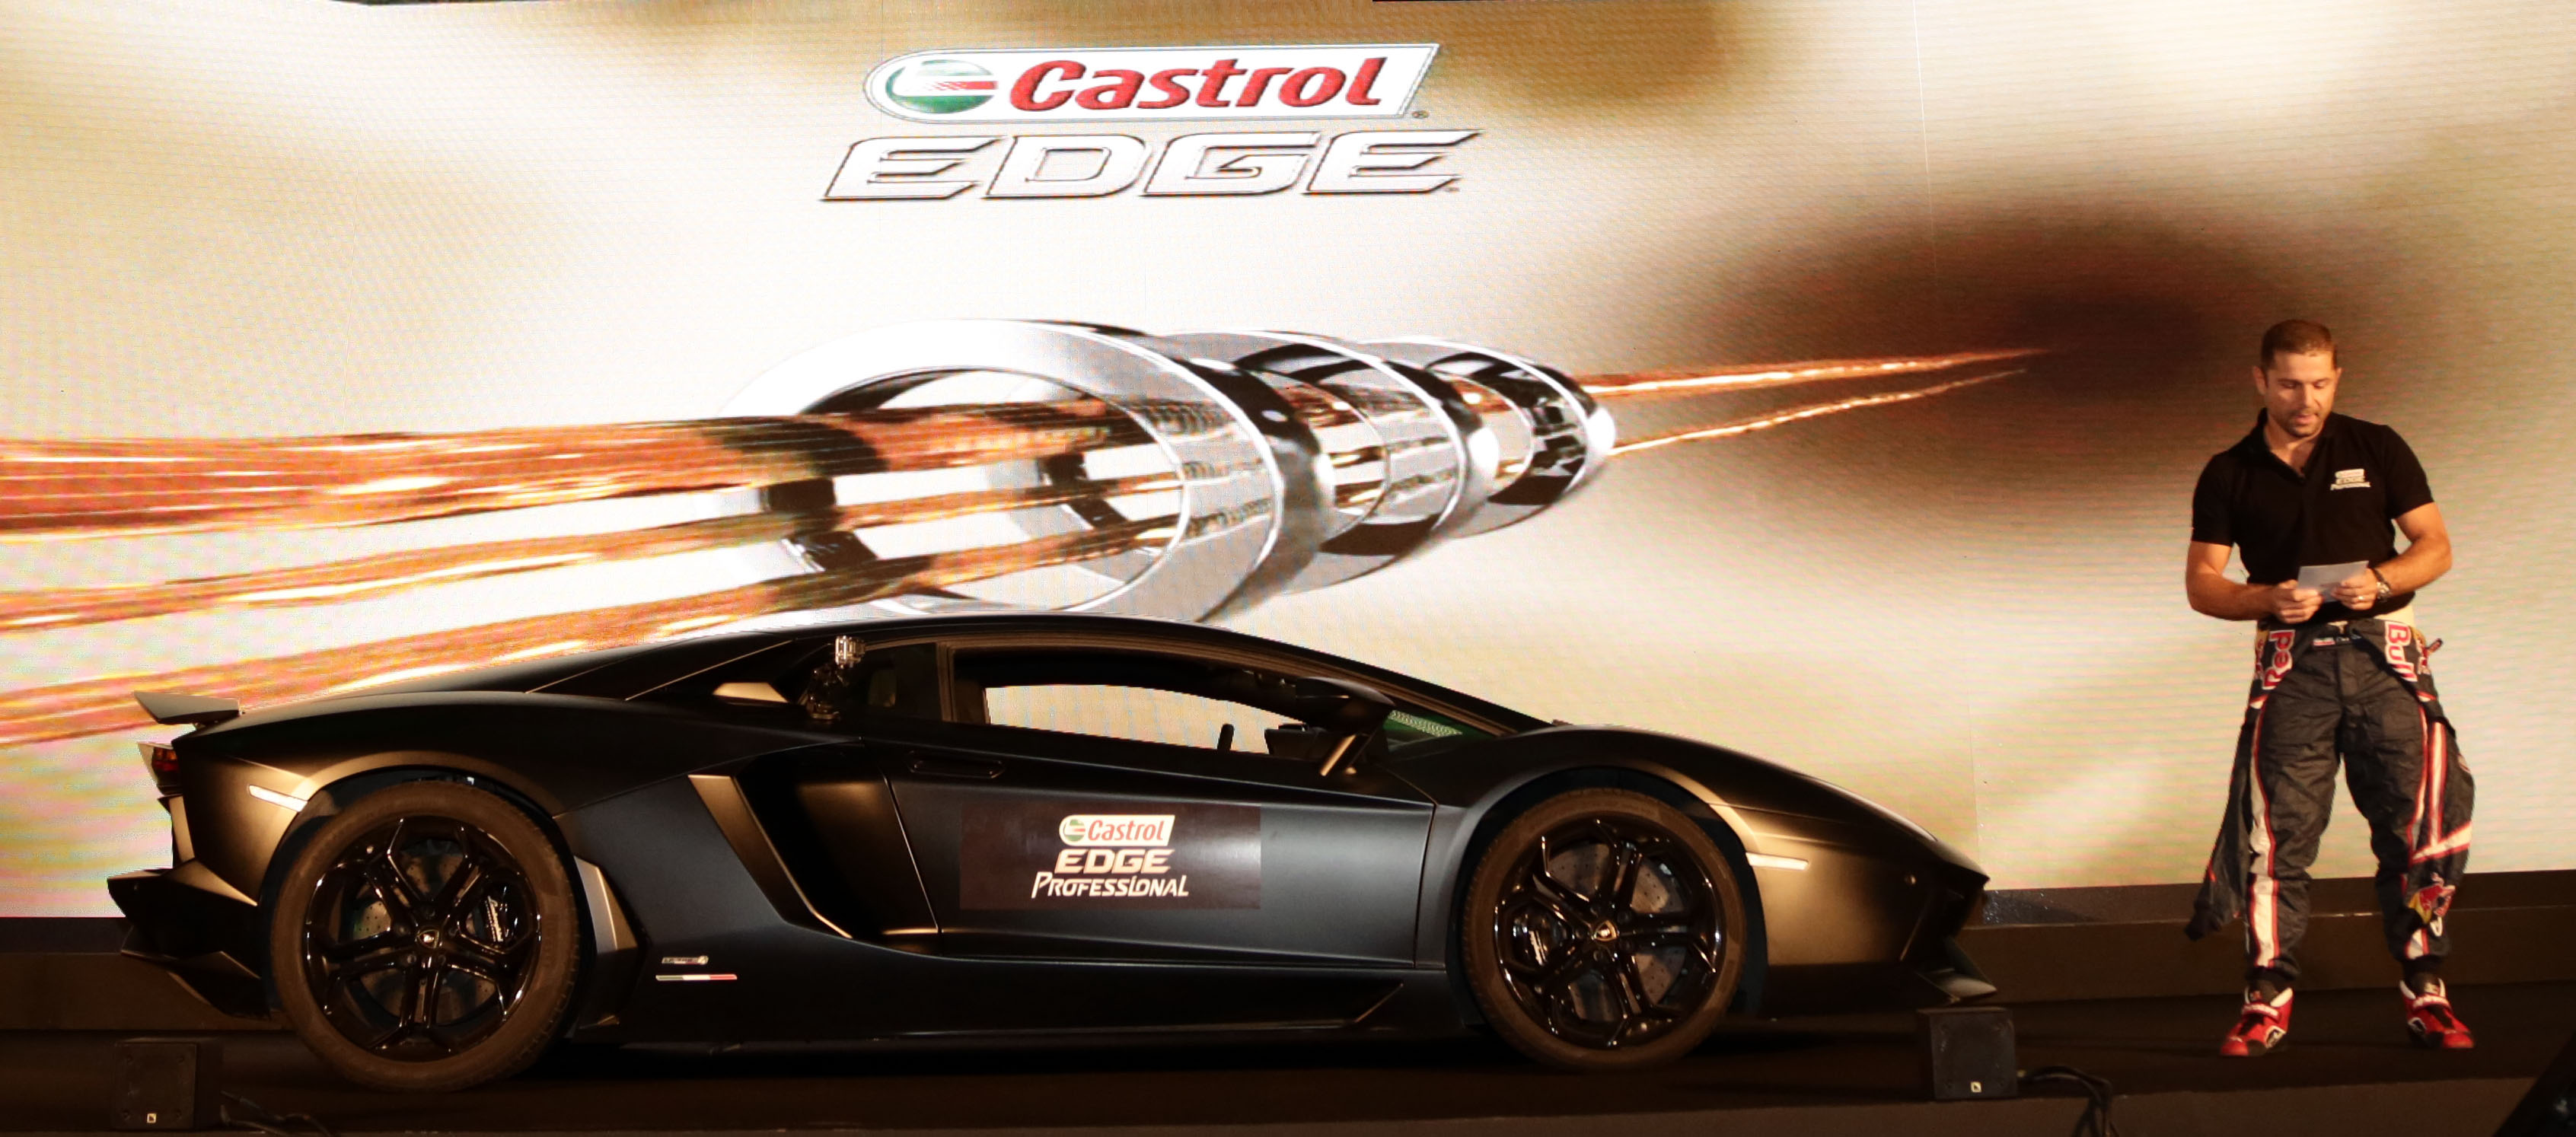 Castrol Introduces Castrol Professional as First CO2 Neutral Engine Oil